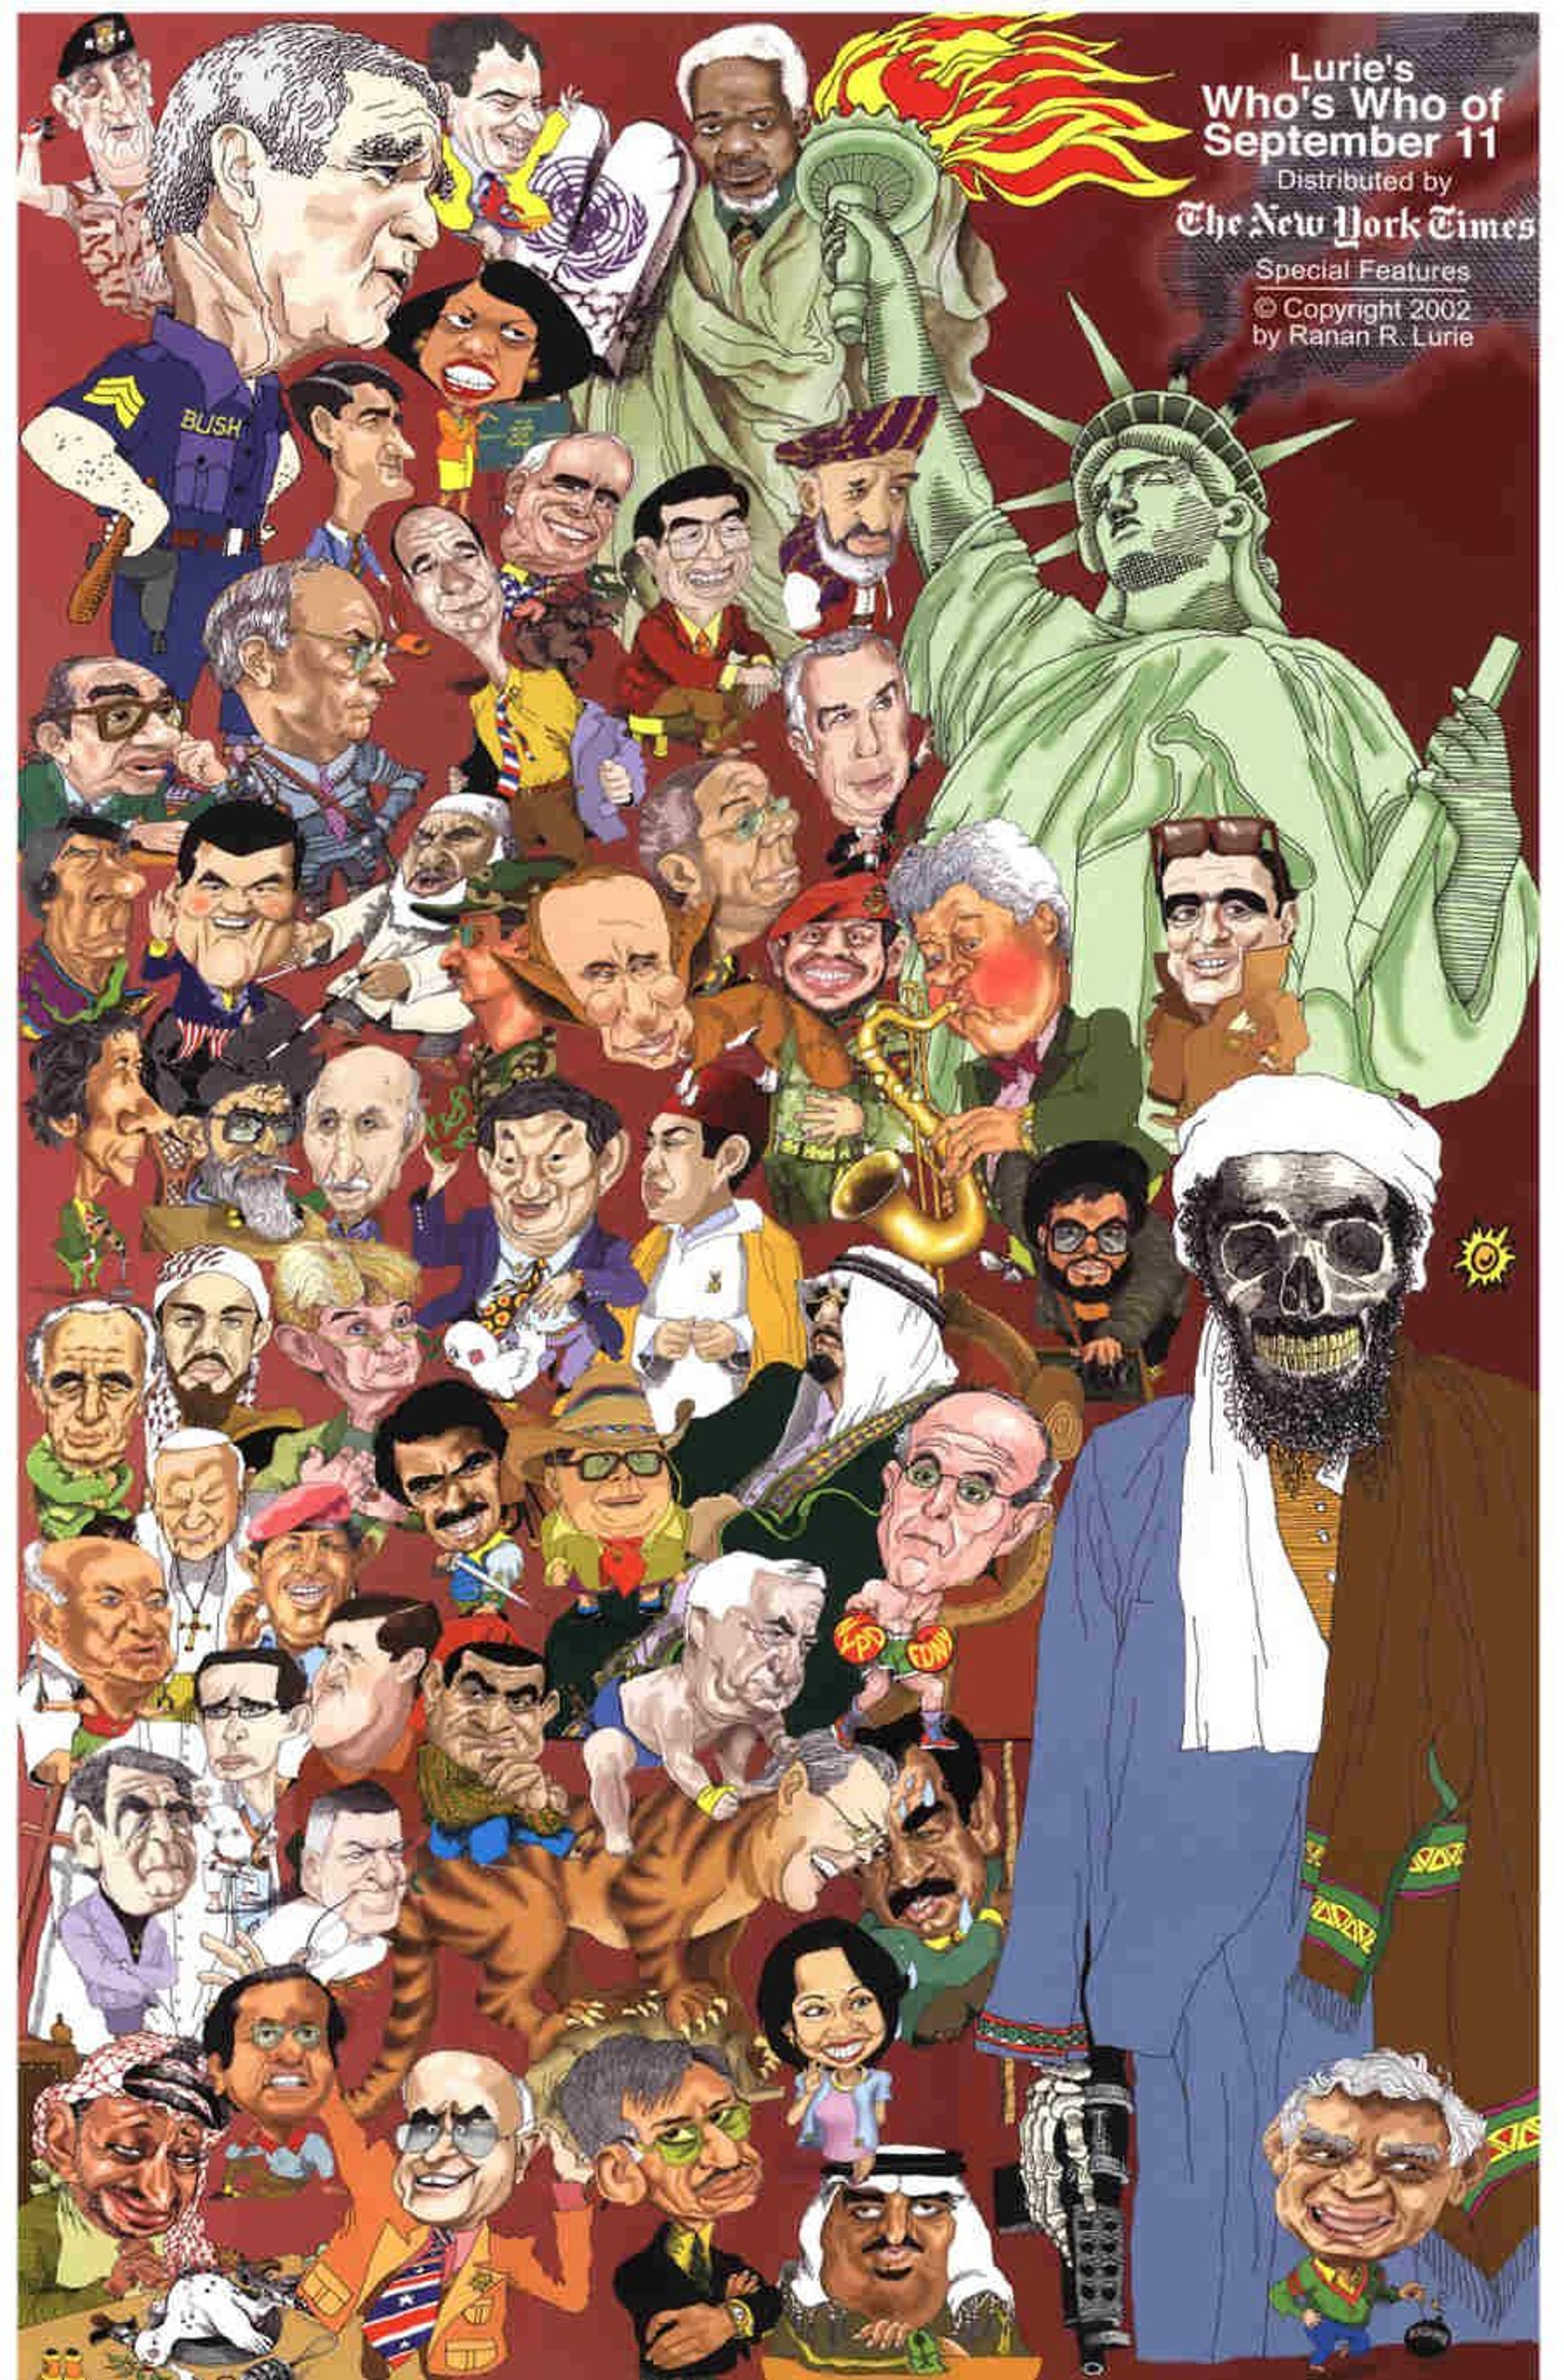 Lurie's Who's Who Of September 11.